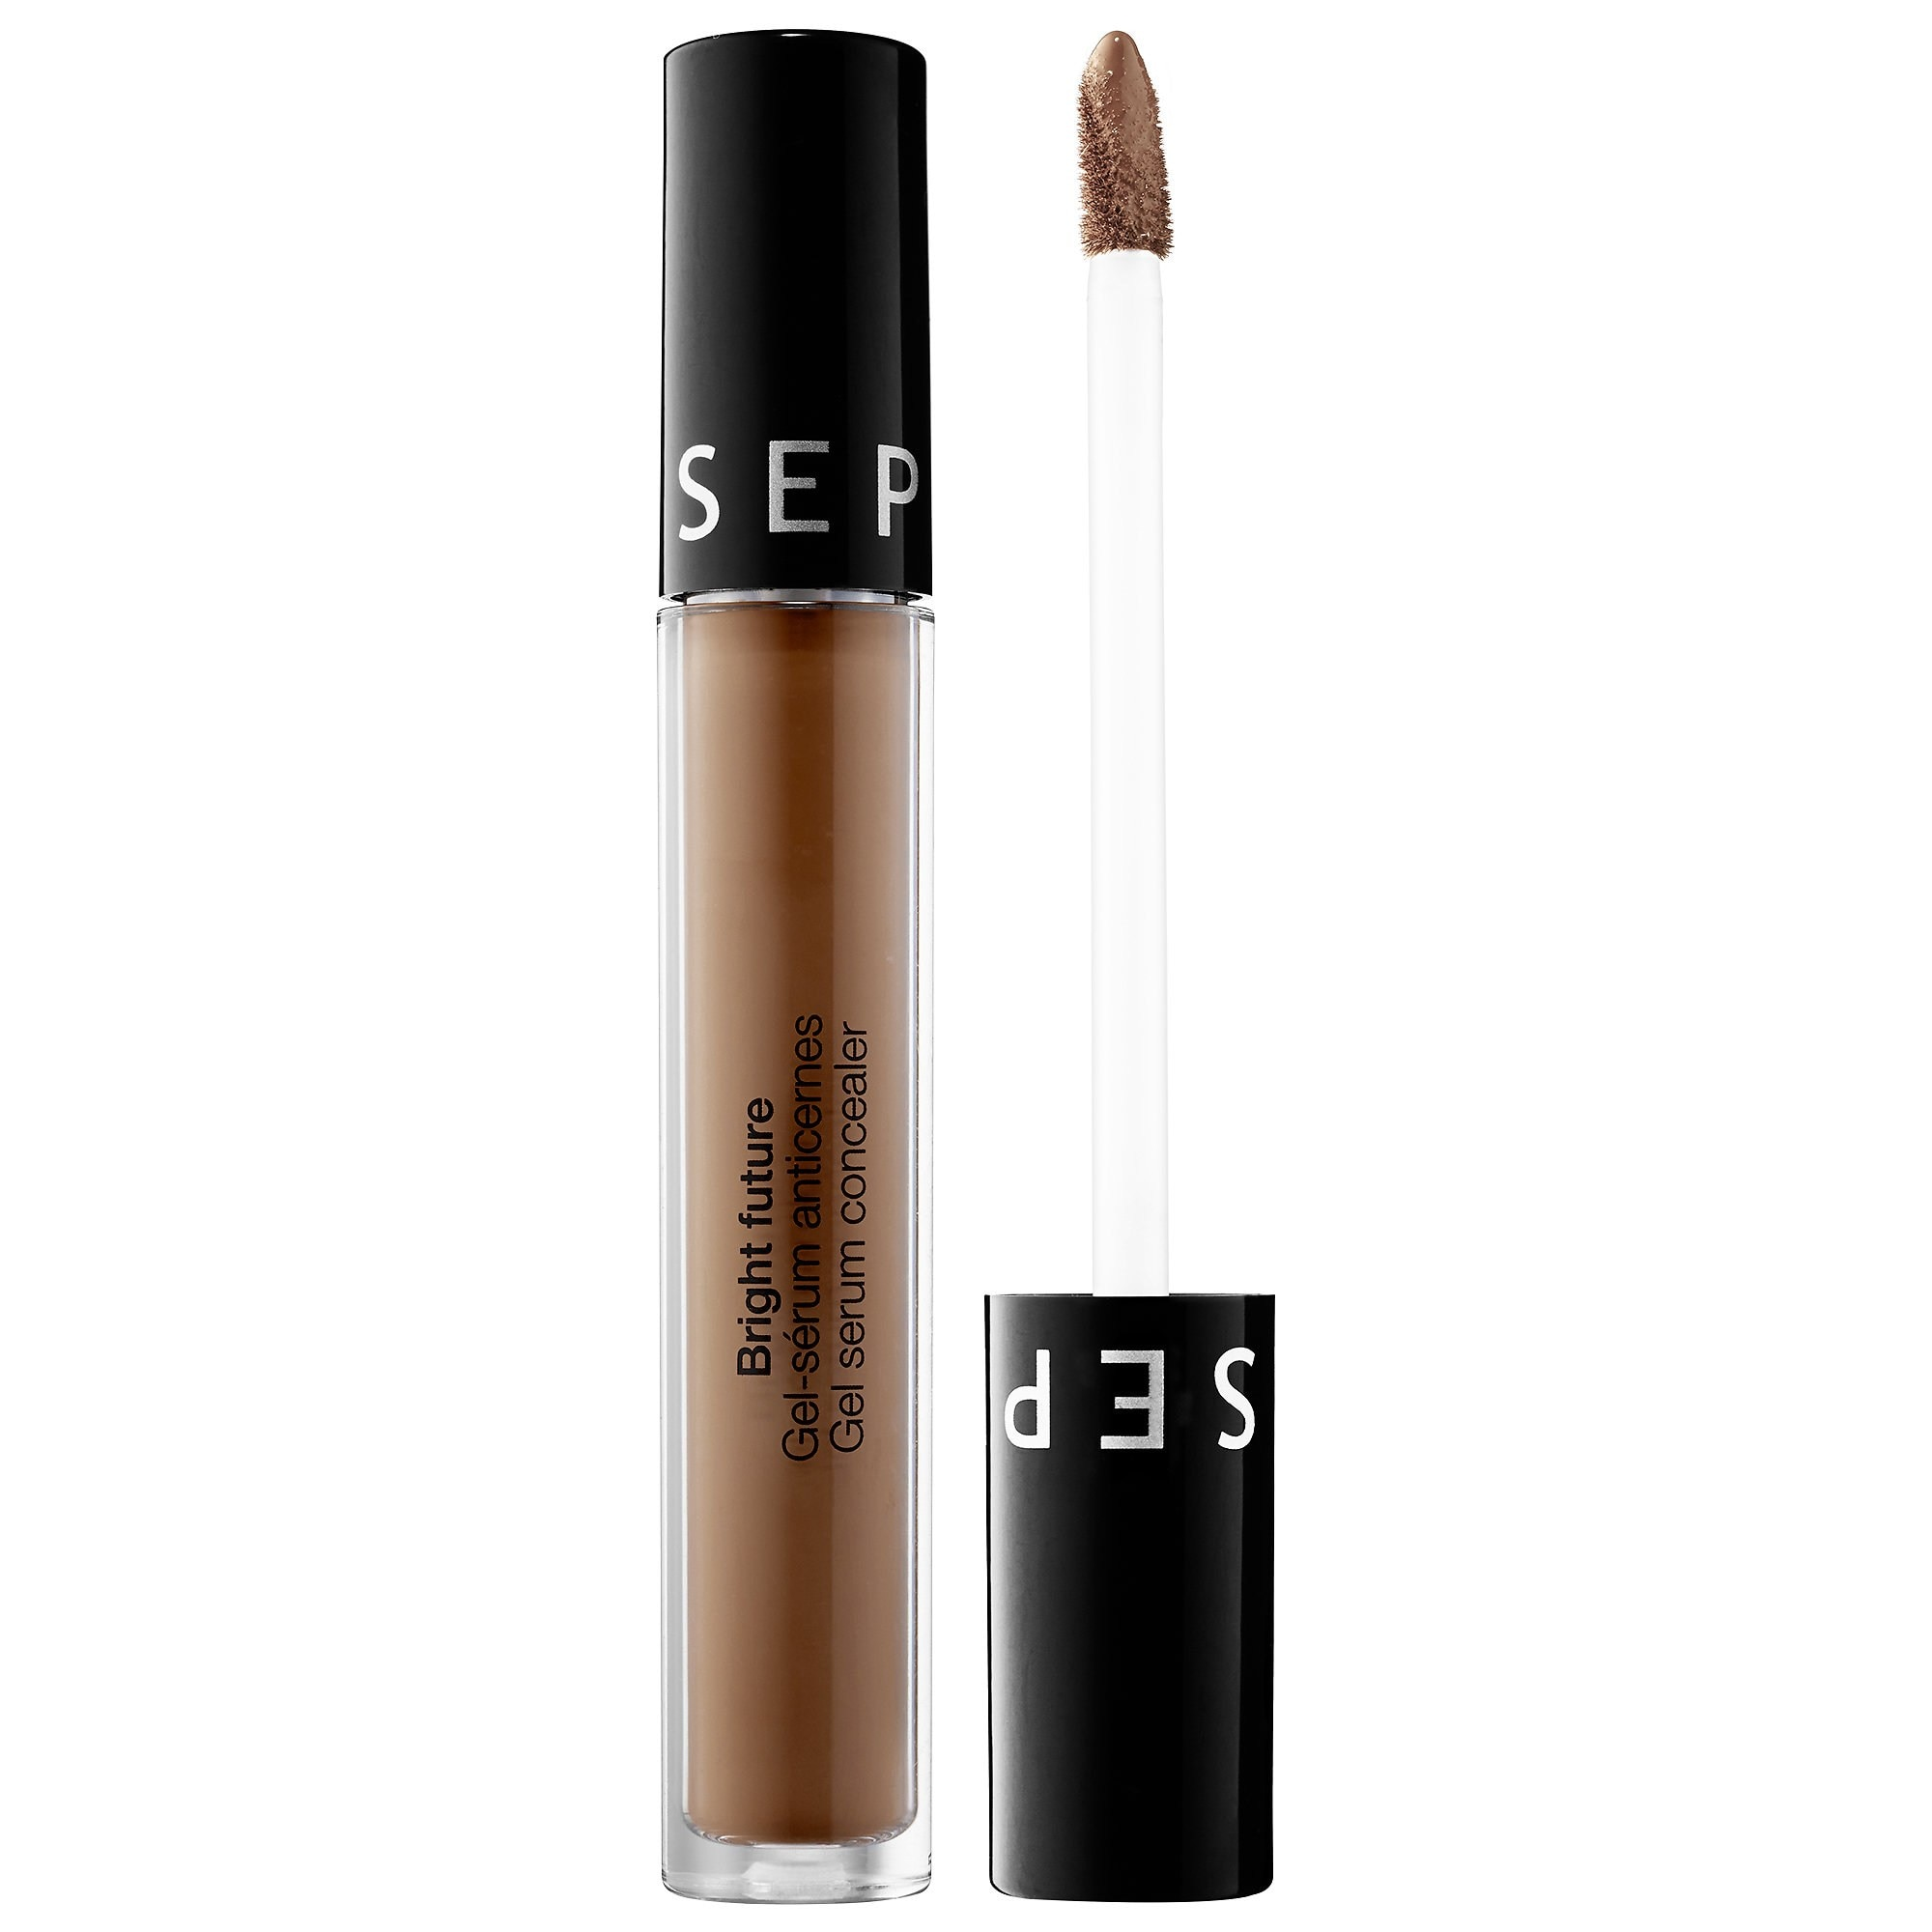 BRIGHT FUTURE GEL SERUM CONCEALER SC